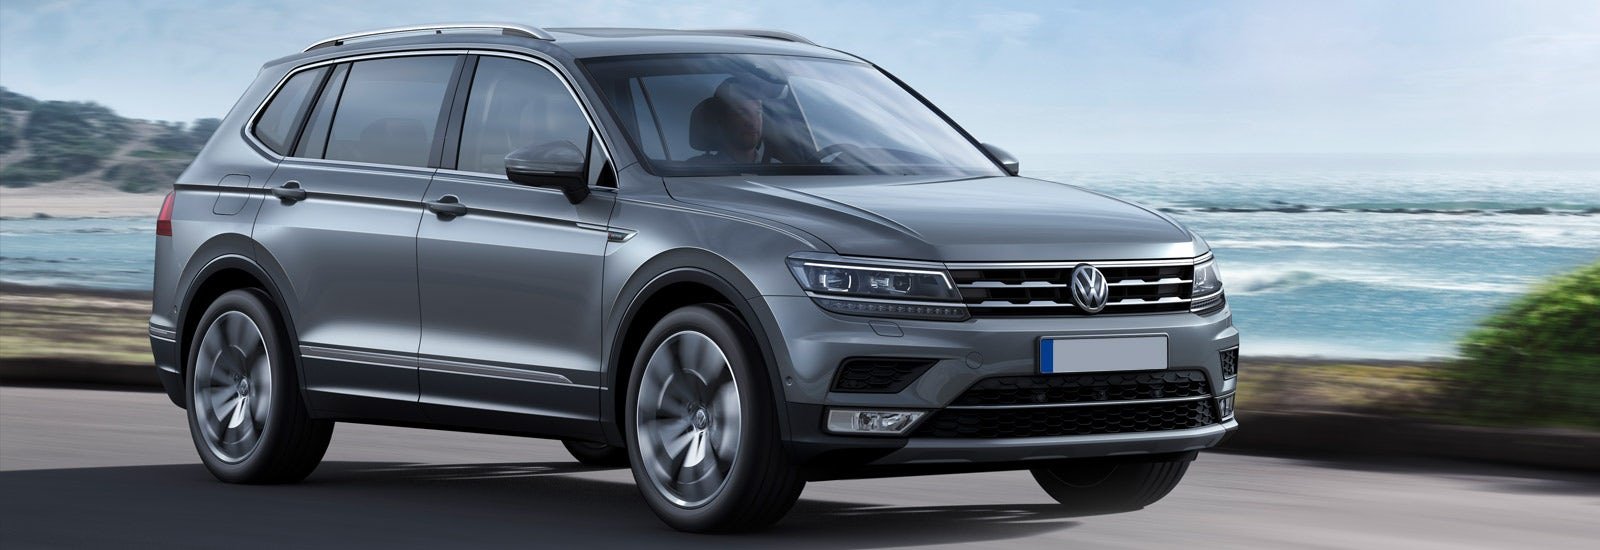 2017 vw tiguan 7 seater price specs release date carwow. Black Bedroom Furniture Sets. Home Design Ideas